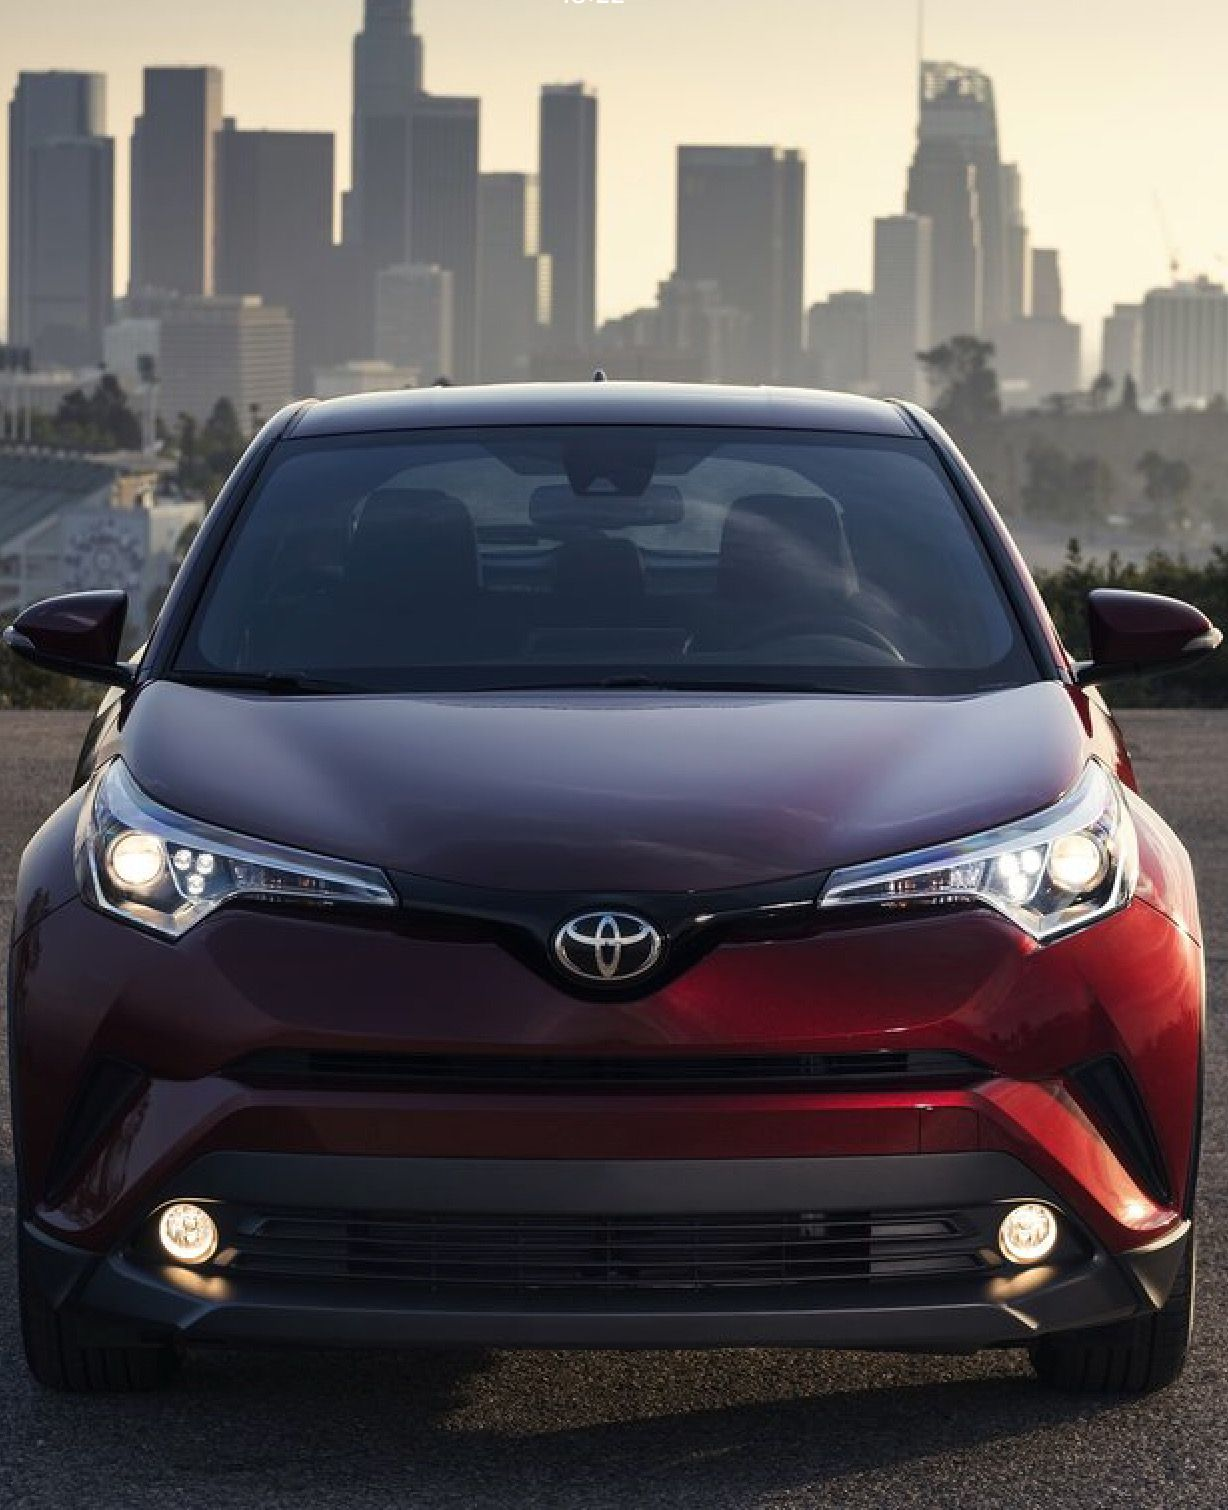 new toyota chr first look and toyota c hr styling 2017 toyota ch dream world pinterest toyota and cars